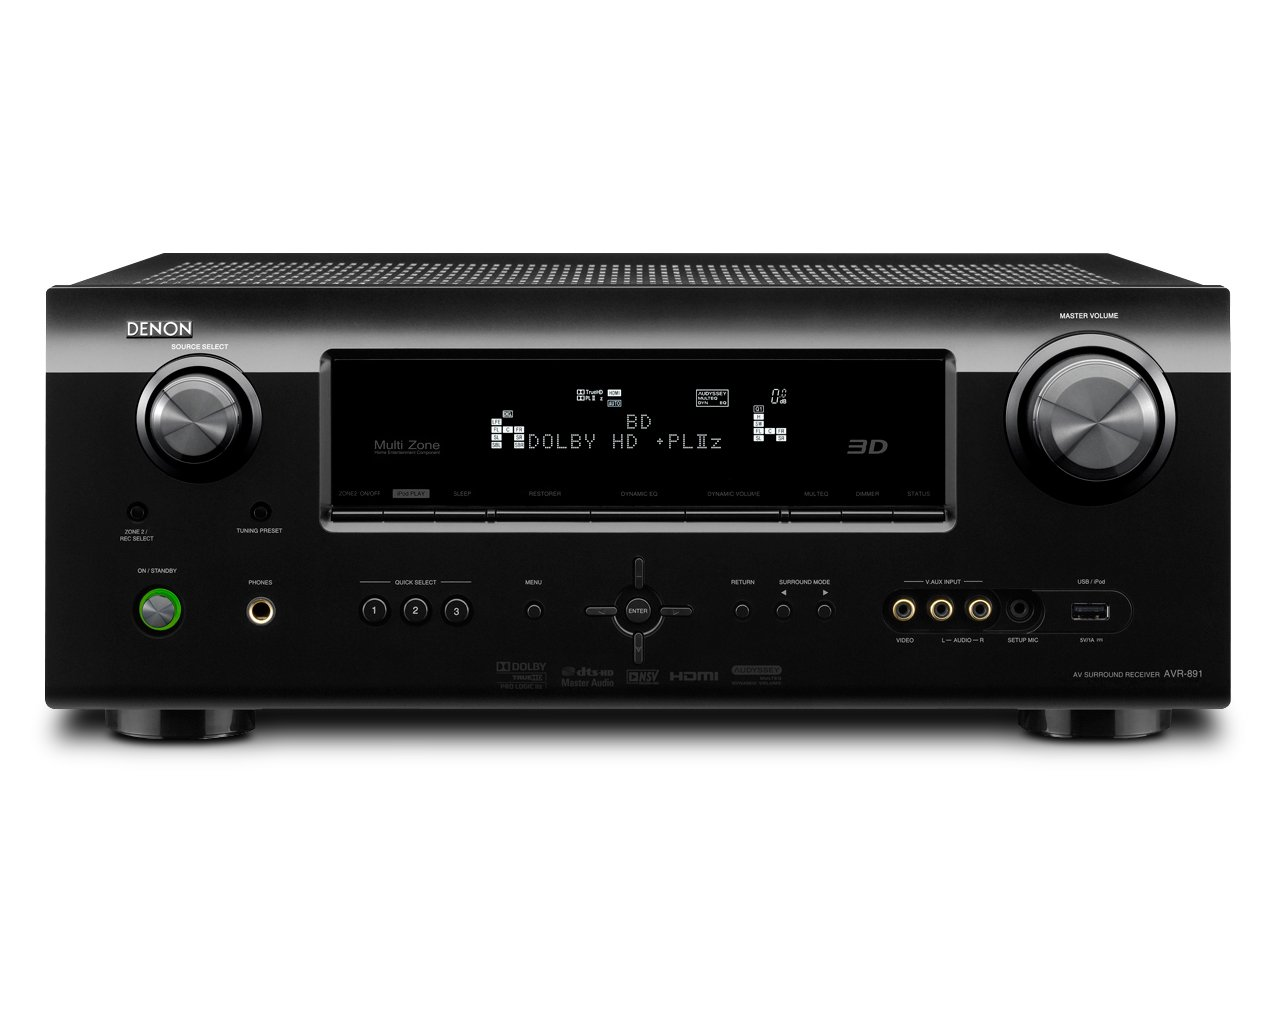 Amazon.com: Denon AVR-891 7.1 Channel 135W AV 1.4 3D-Ready Receiver -  Black: Electronics